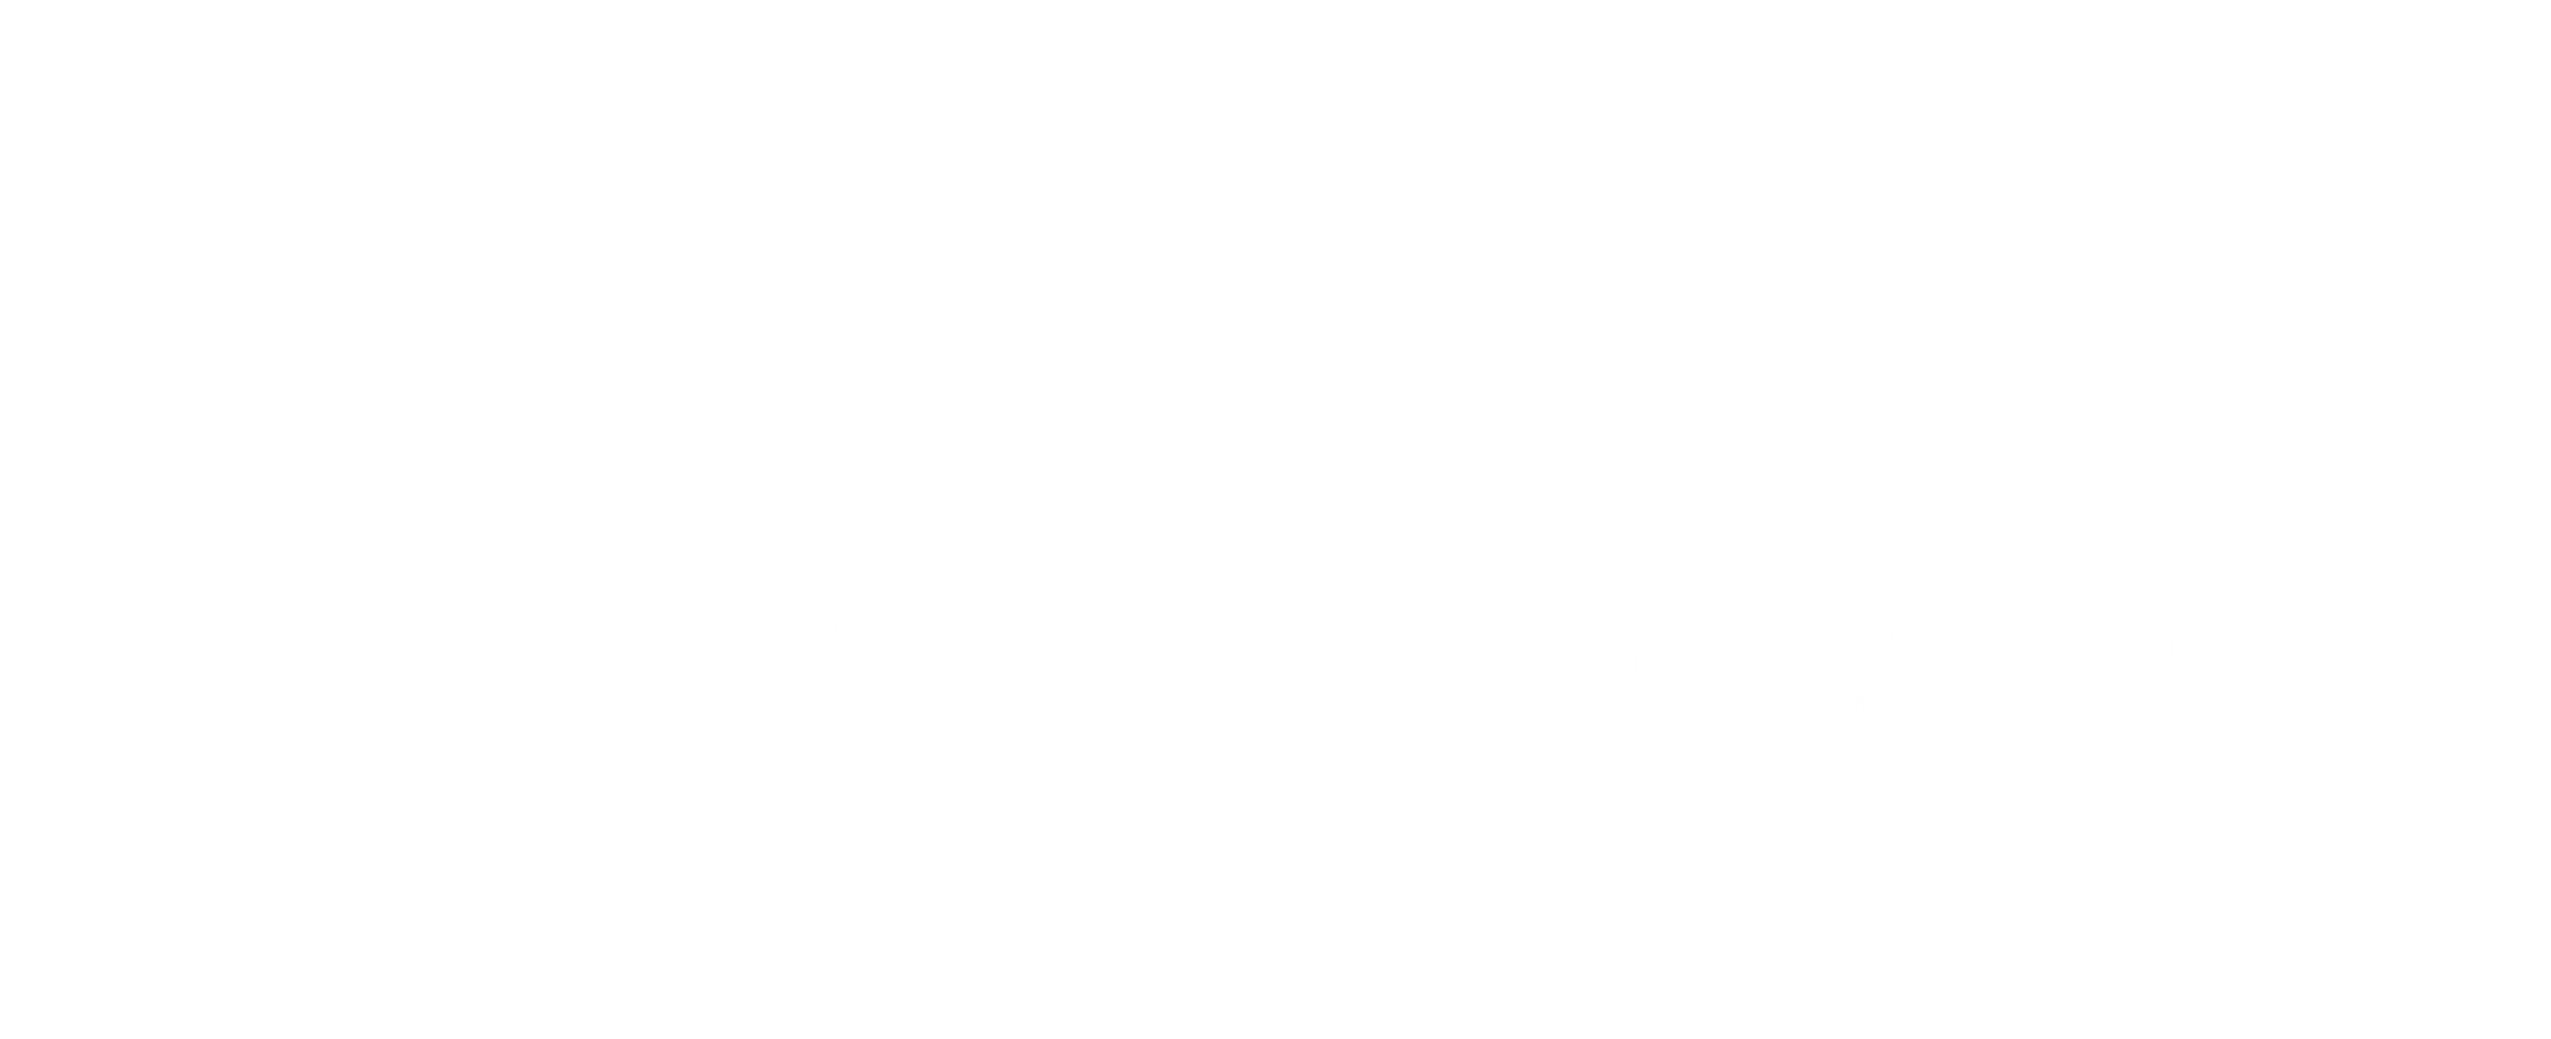 Hawthorne at Blanco Riverwalk